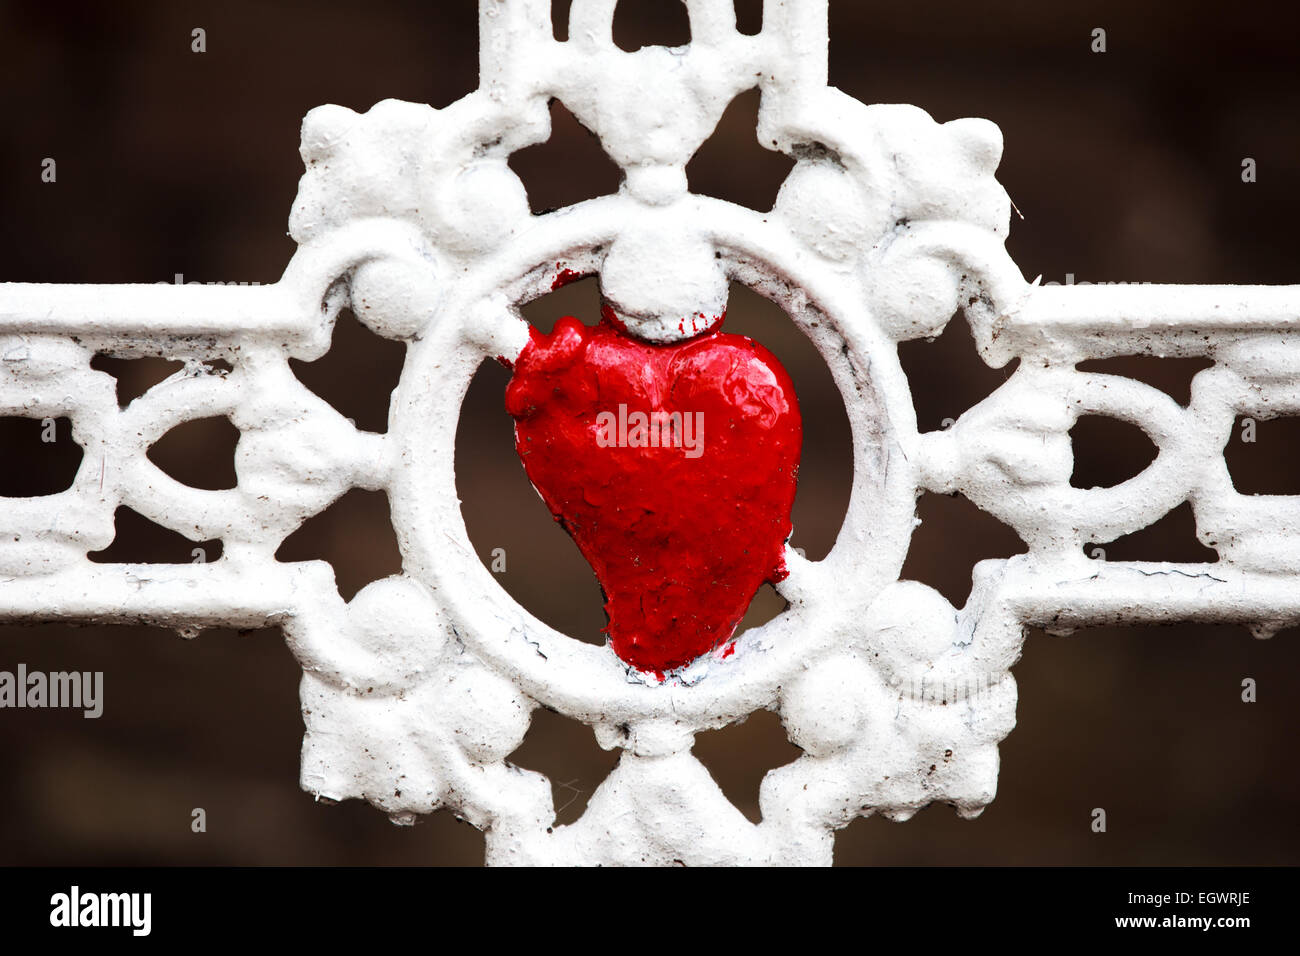 White cast iron cross with red heart in the center cemetery Hasselt color - Stock Image